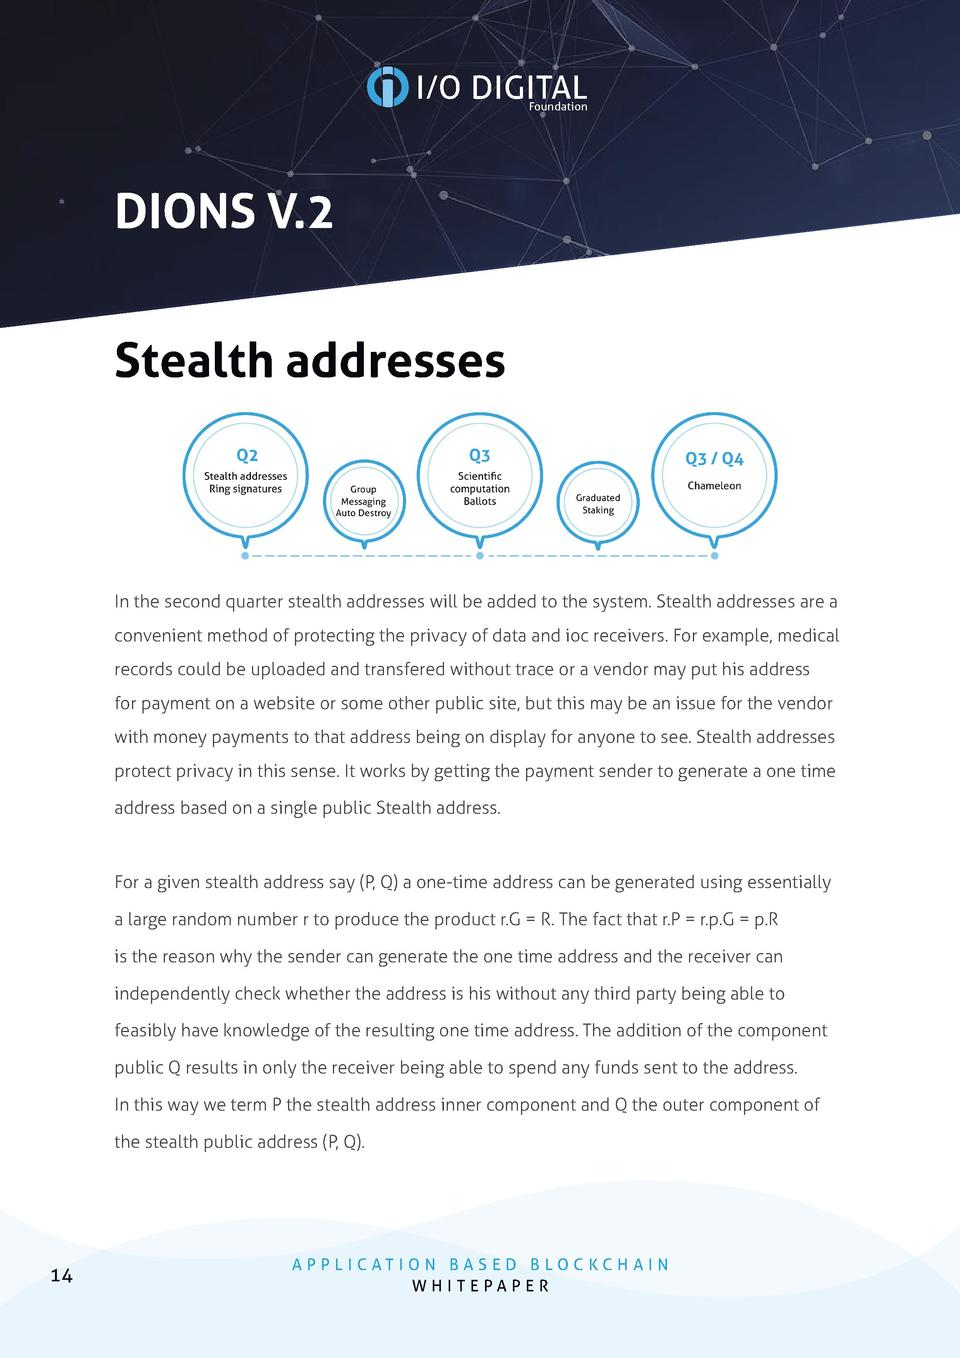 I O DIGITAL Foundation  DIONS V.2 Stealth addresses  In the second quarter stealth addresses will be added to the system. ...